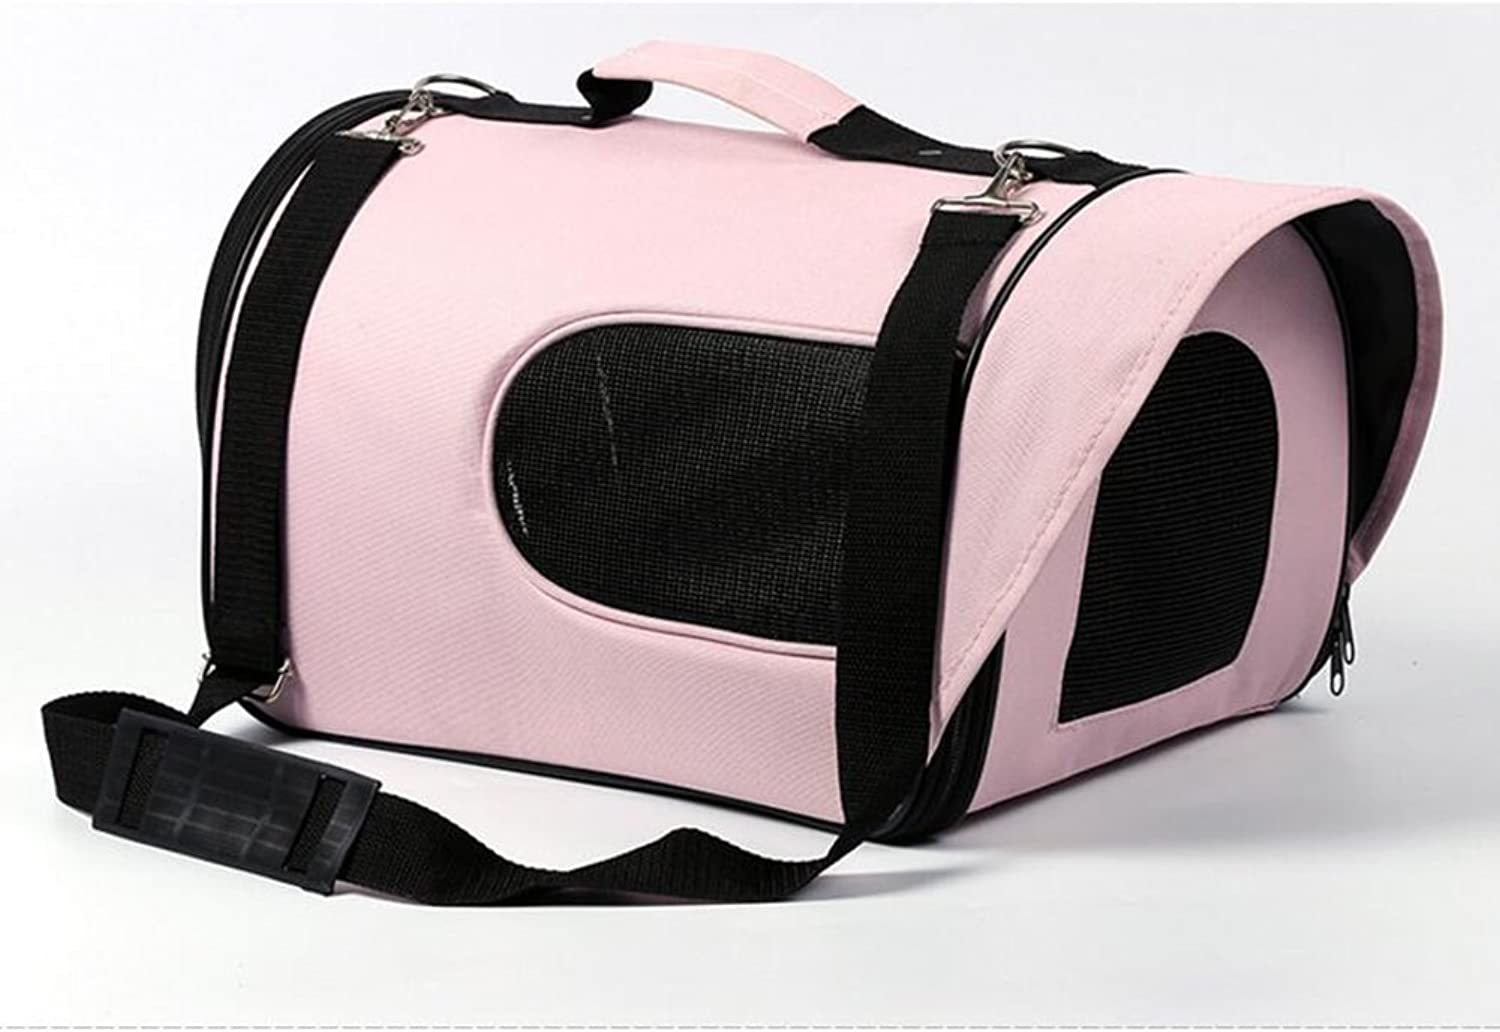 Backpacks YIXIN Cats and Dogs Pet Outdoors Package Oblique Bag Handbag Waterproof Oxford Cloth Easy To Carry Pink 4 (Size   M35  25  34CM)